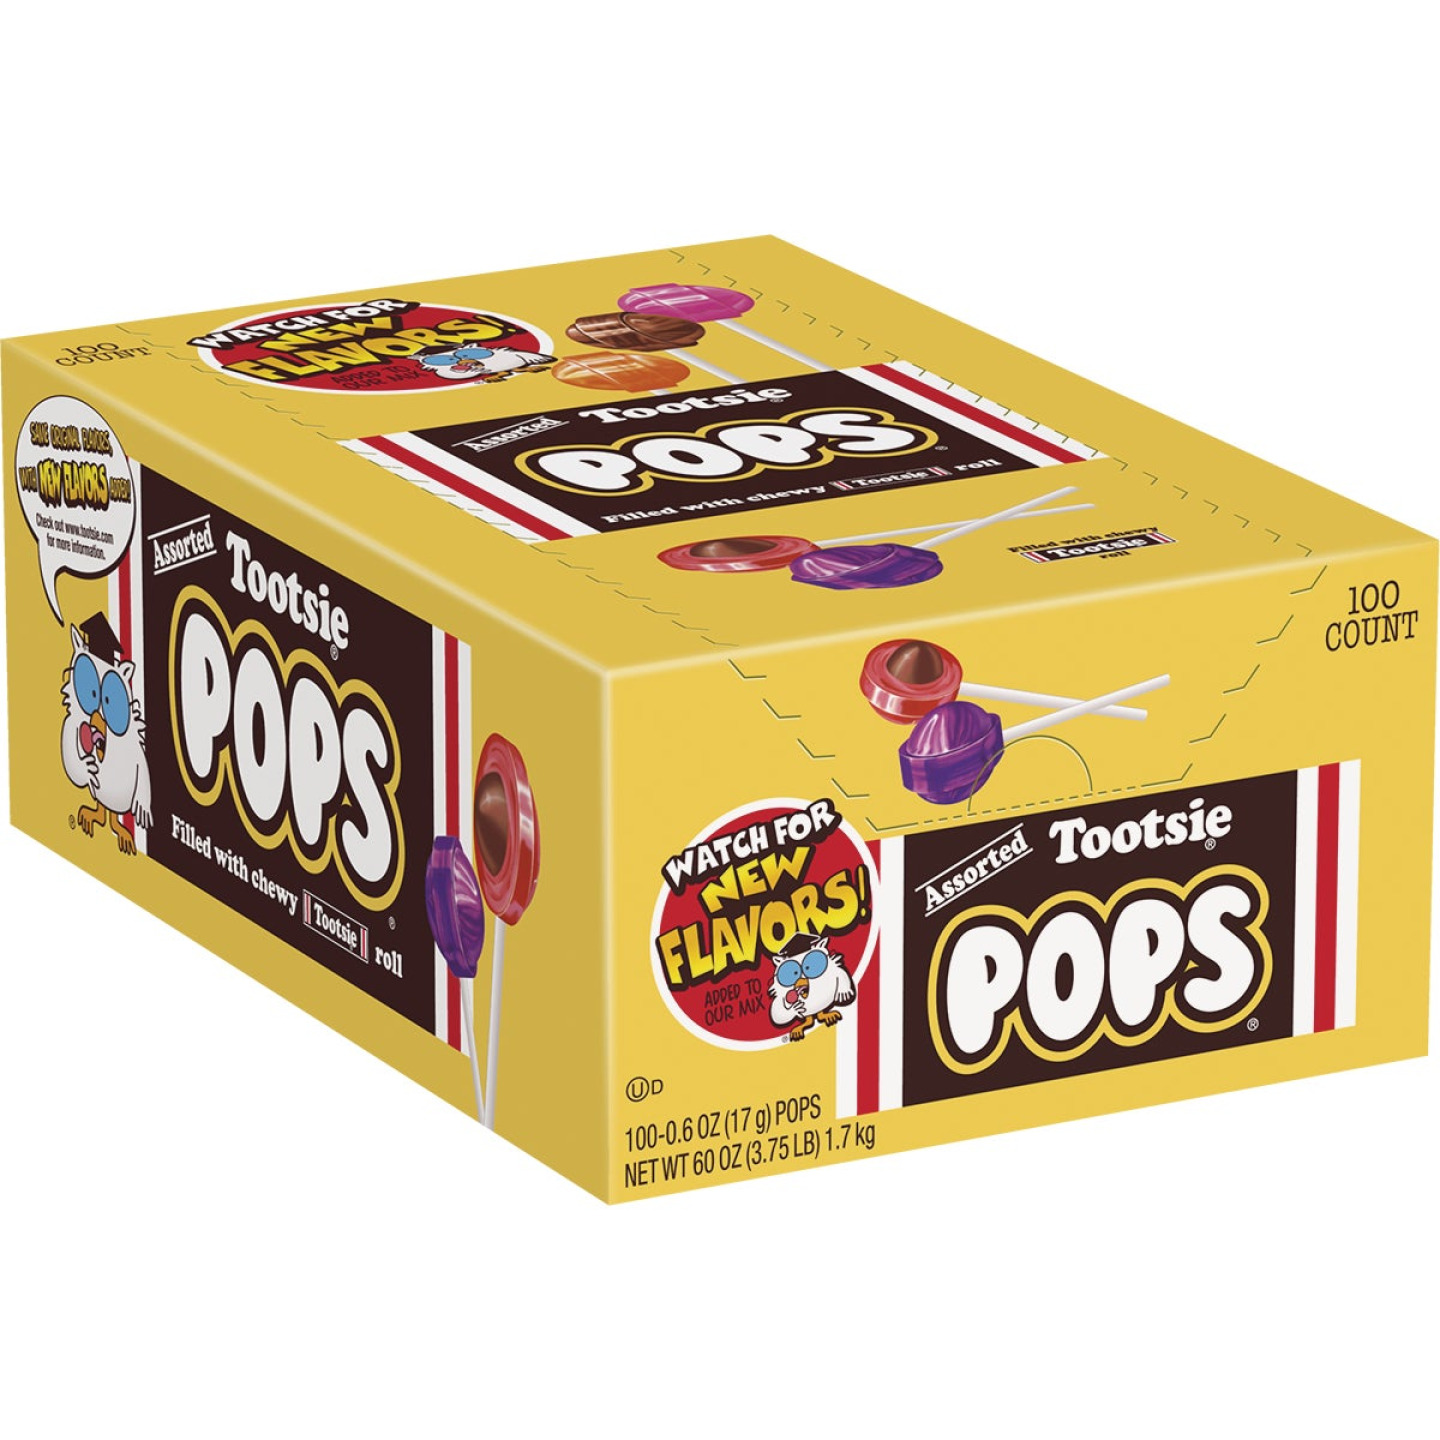 Tootsie Pop Assorted Flavor Lollipop Display (100-Count) Image 1